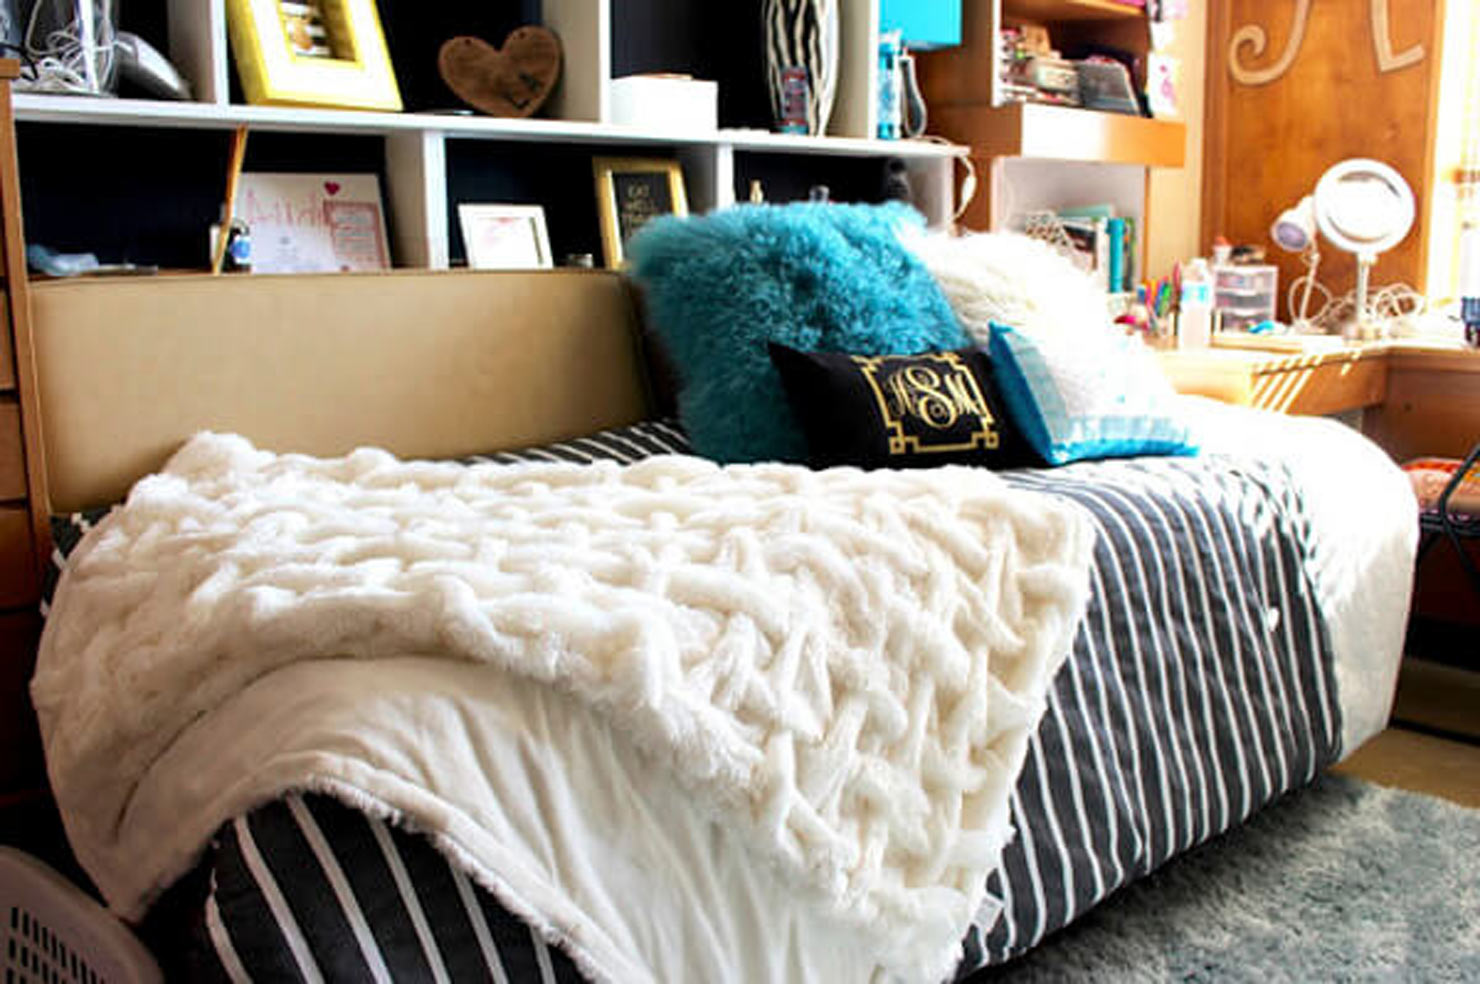 a cozy bed with layered blankets and pillows.